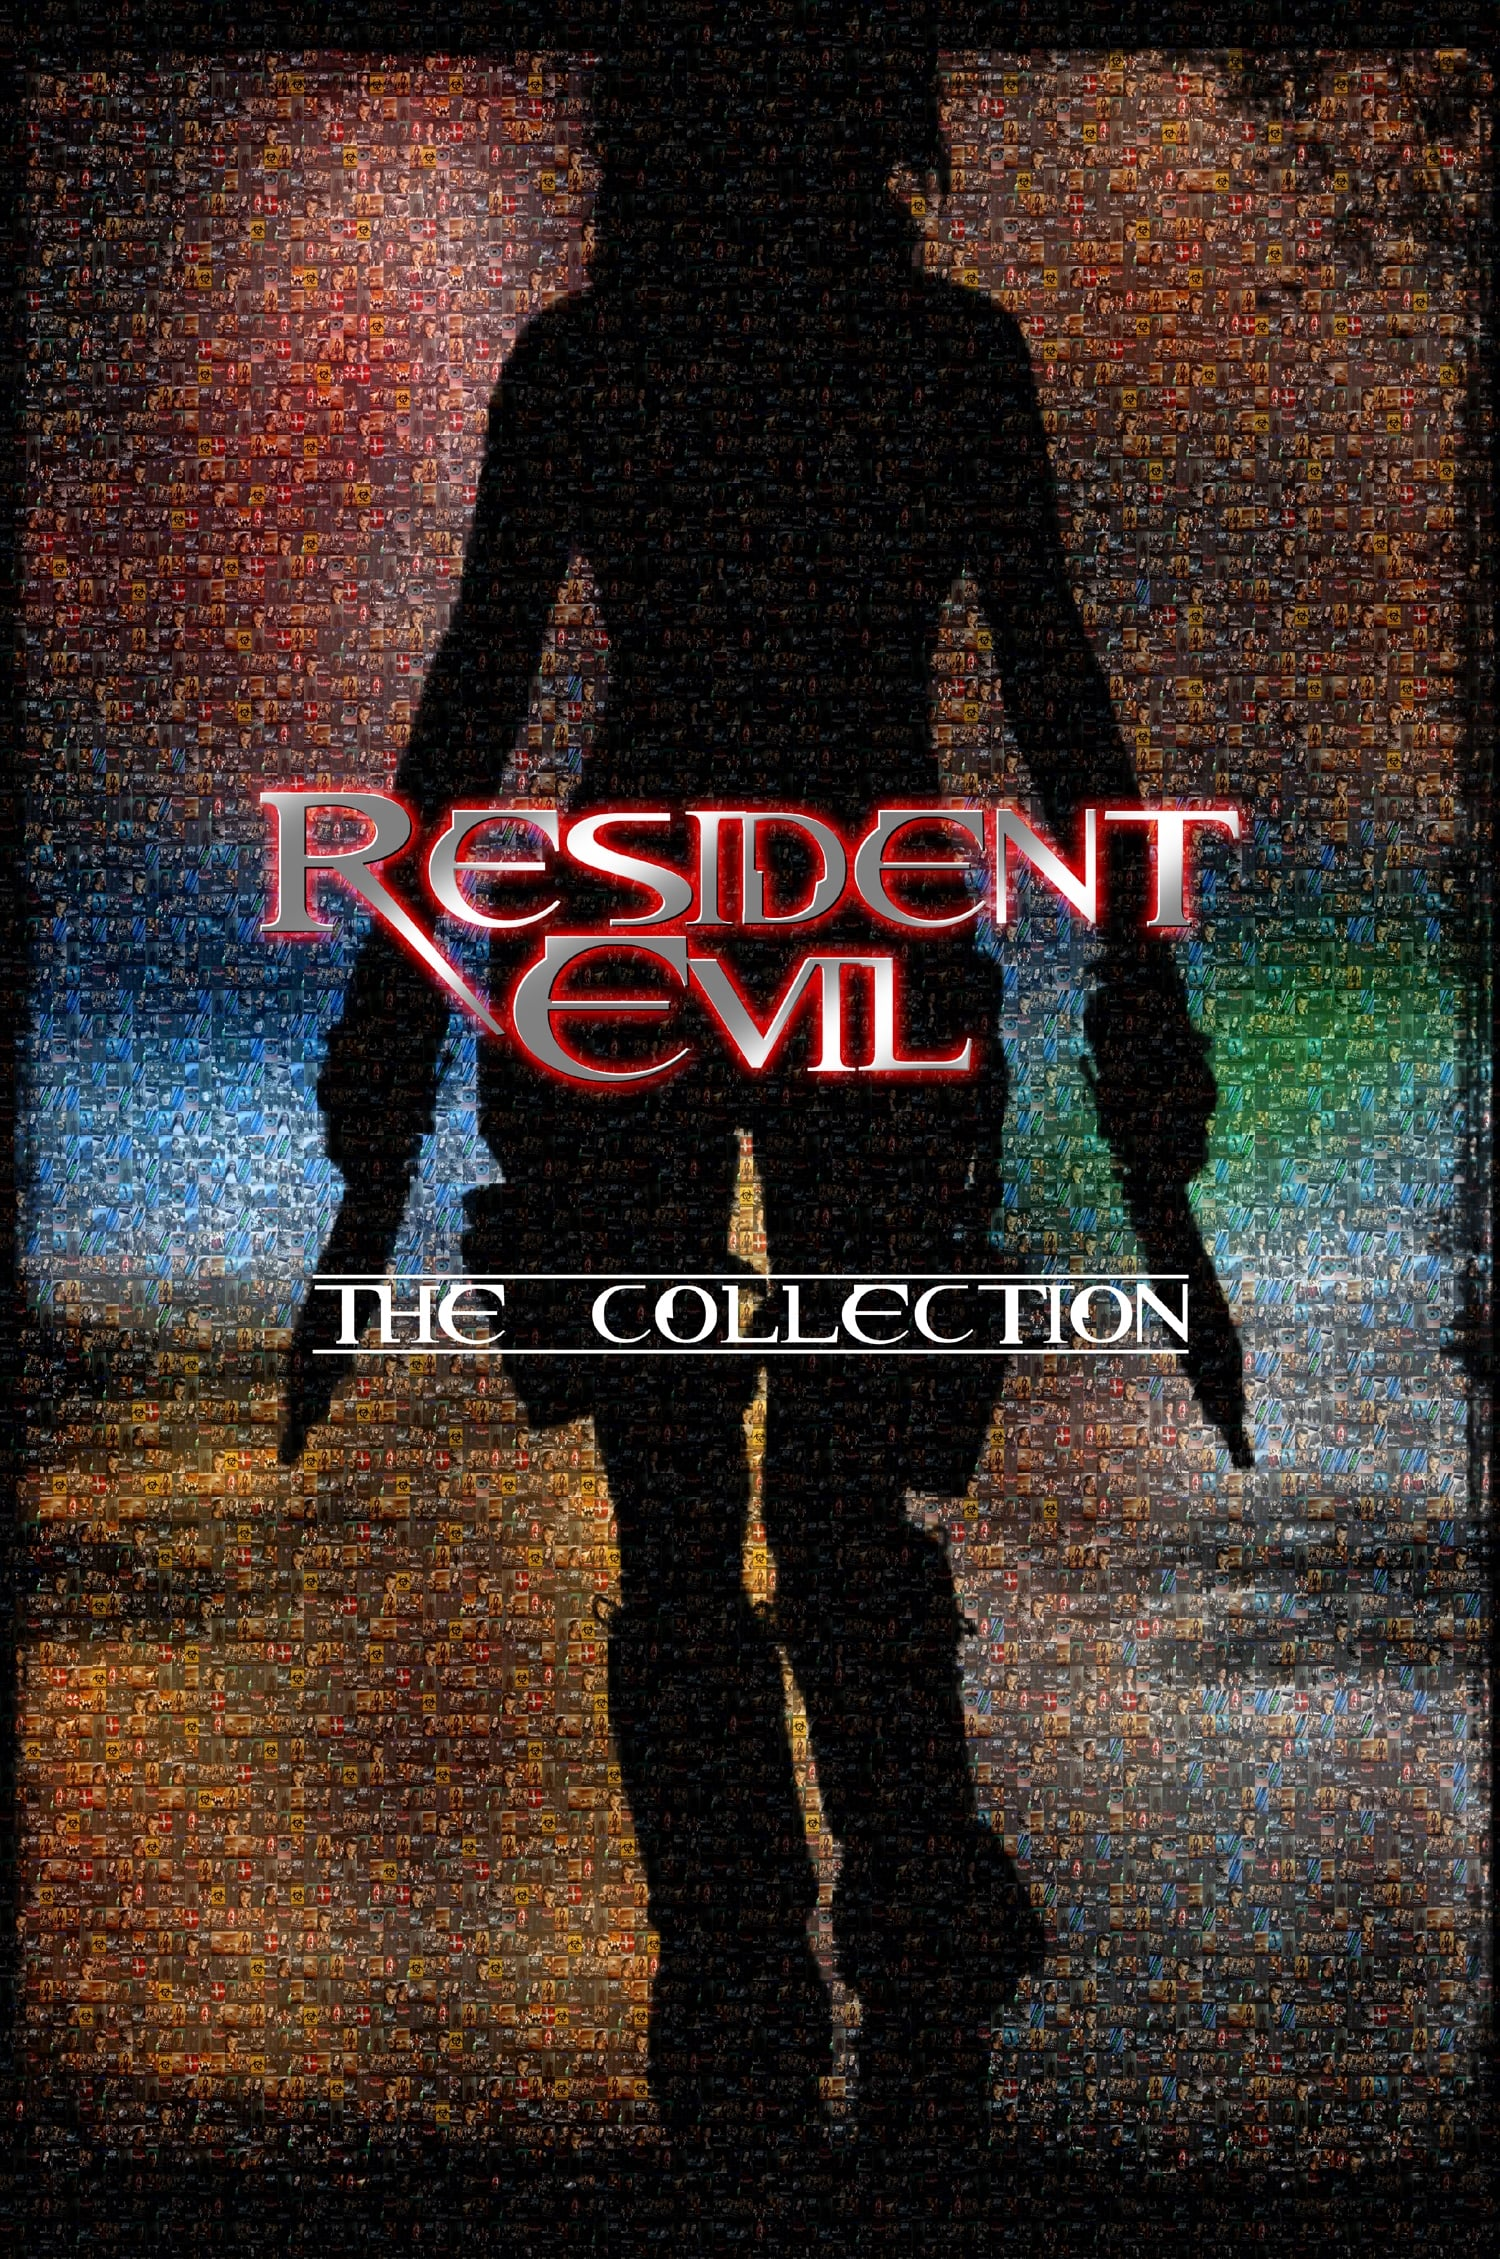 all movies from resident evil collection saga are on